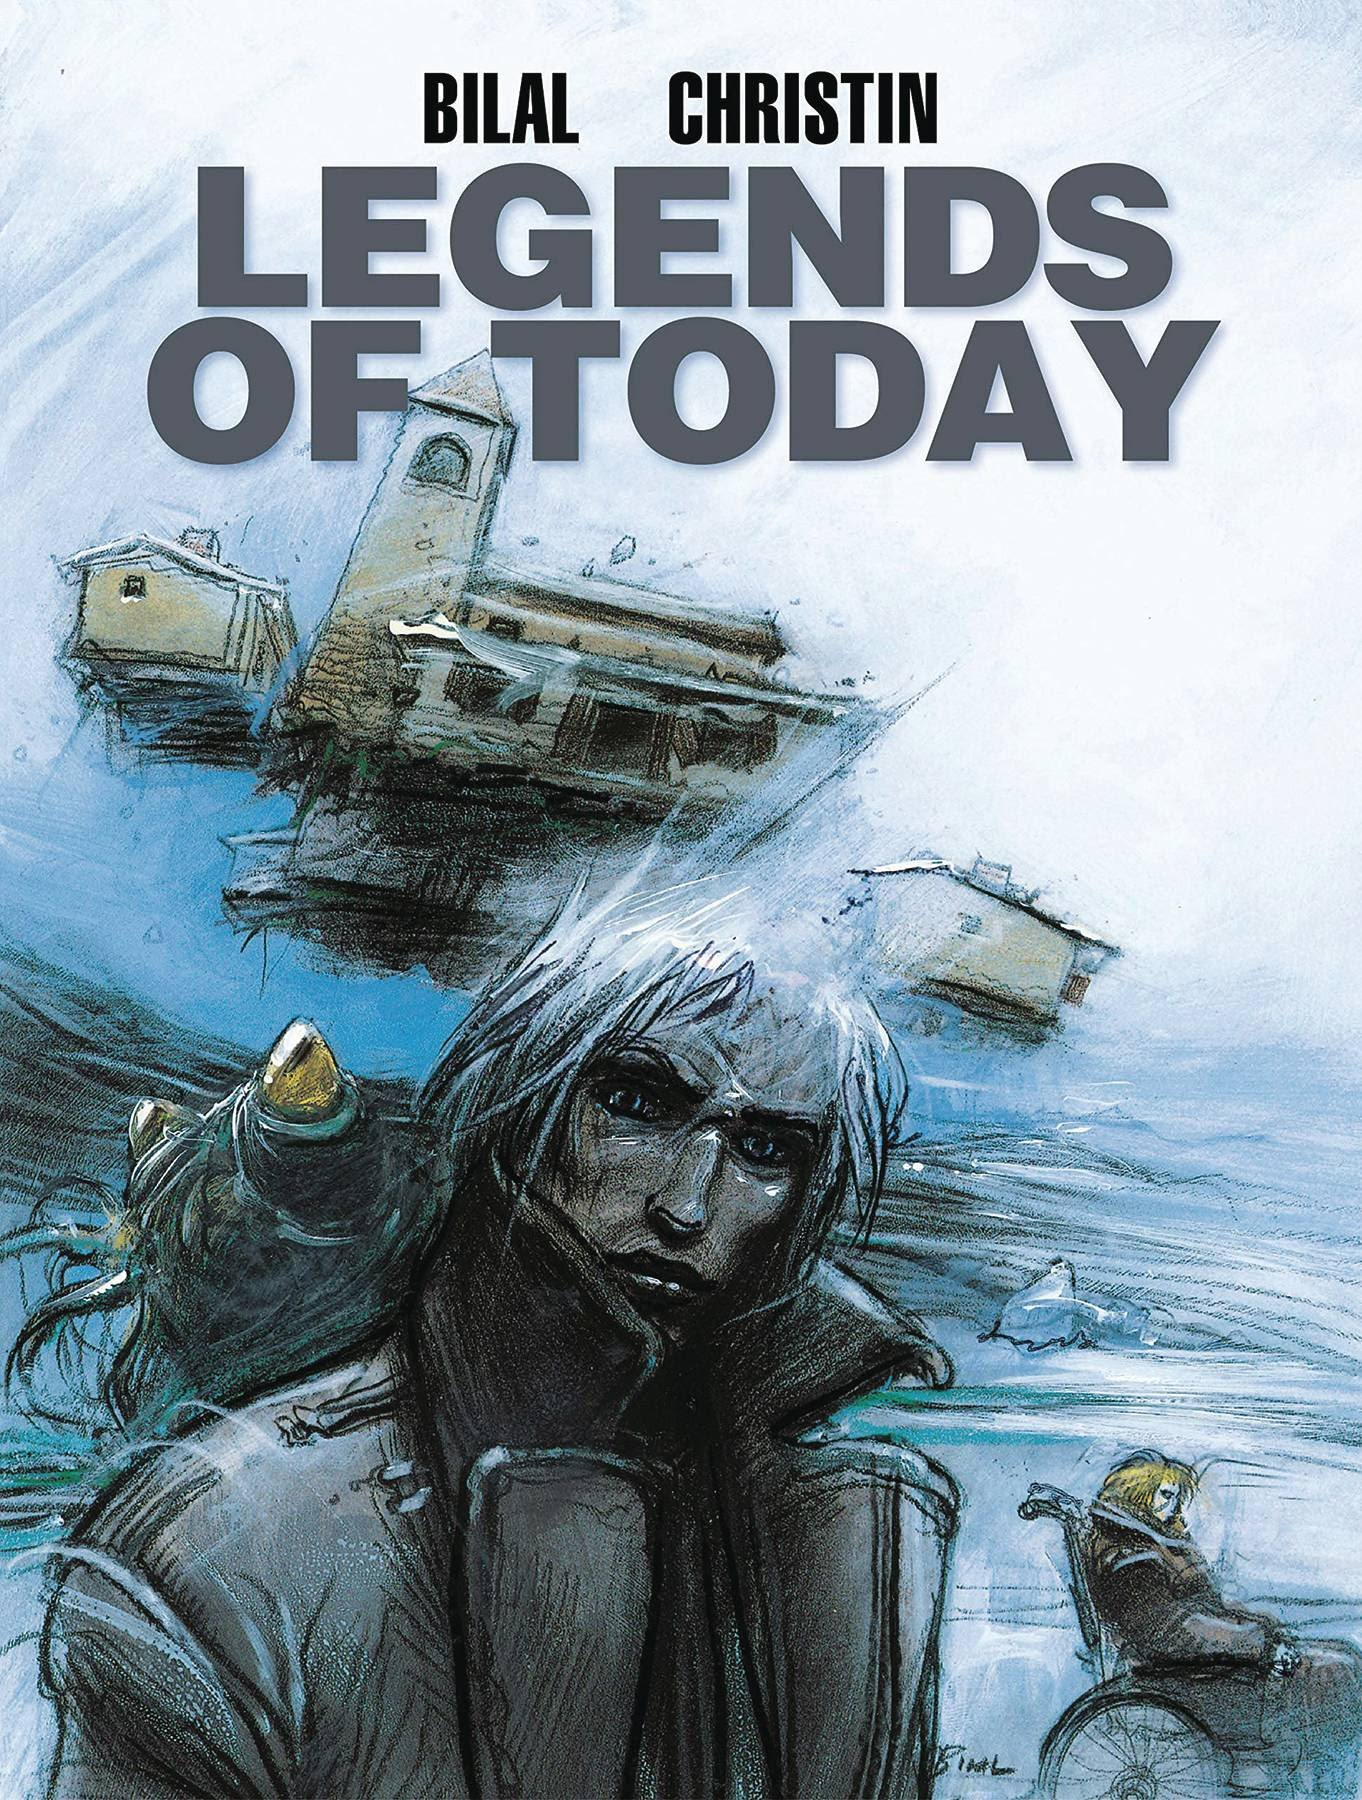 Legends of Today by Enki Bilal - a hardcover book